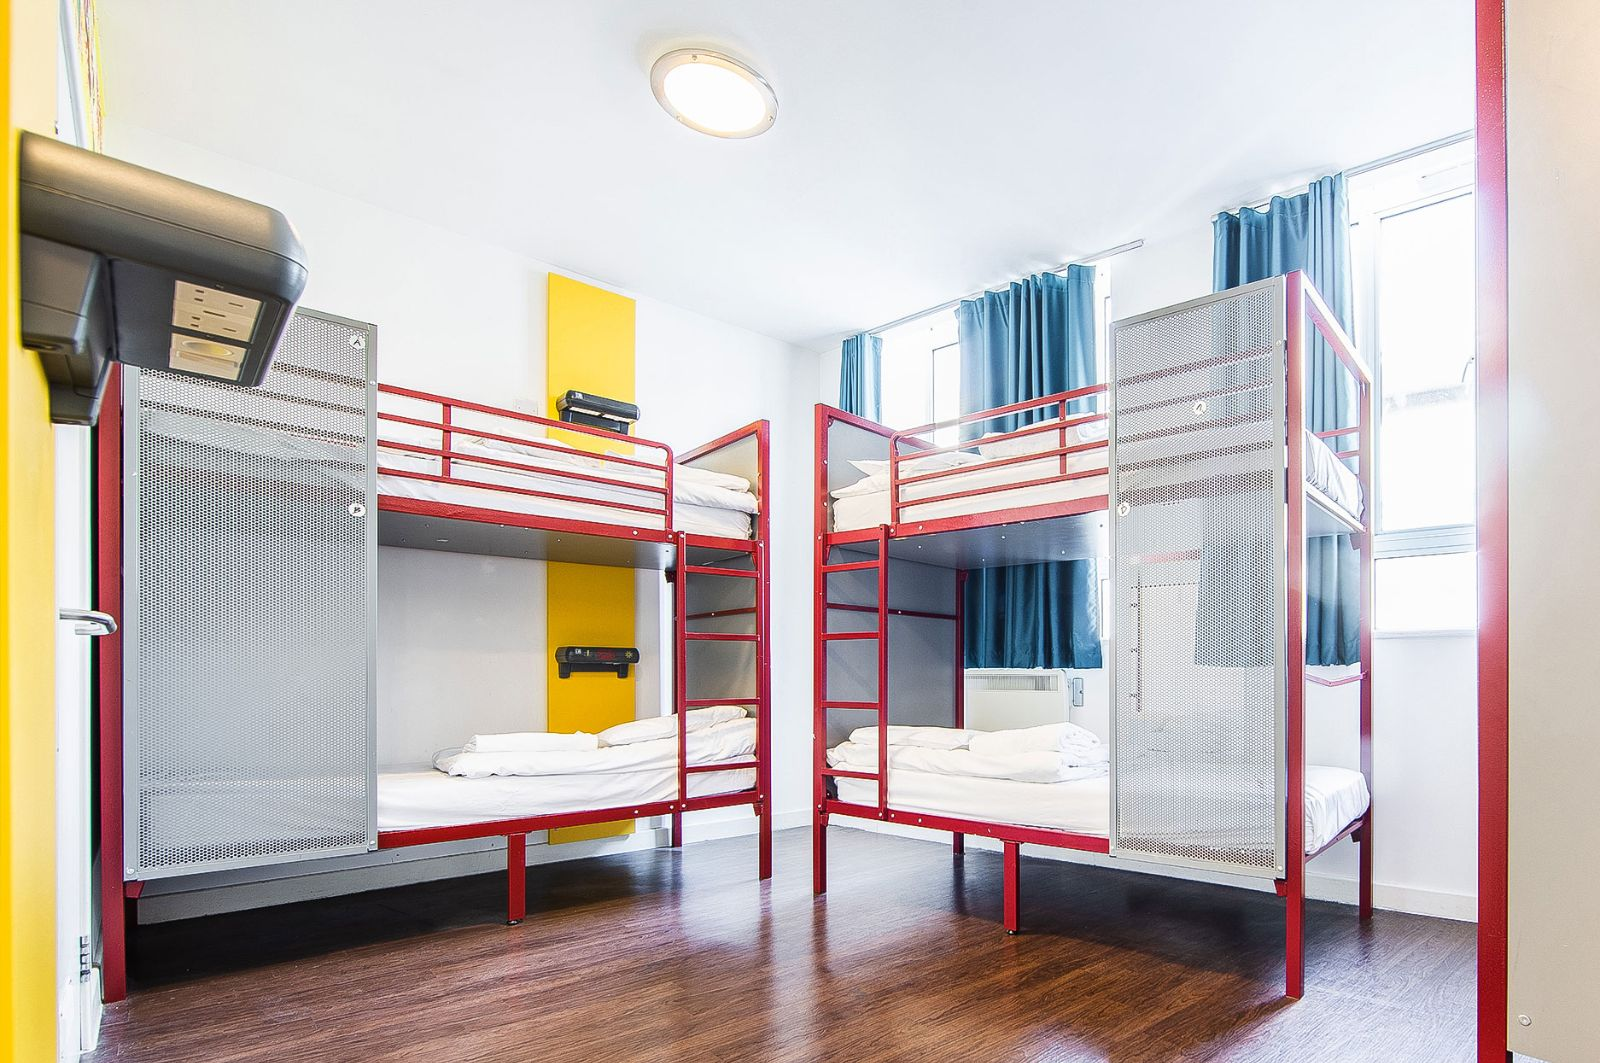 Three Crables in a dormitory with bunkbeds